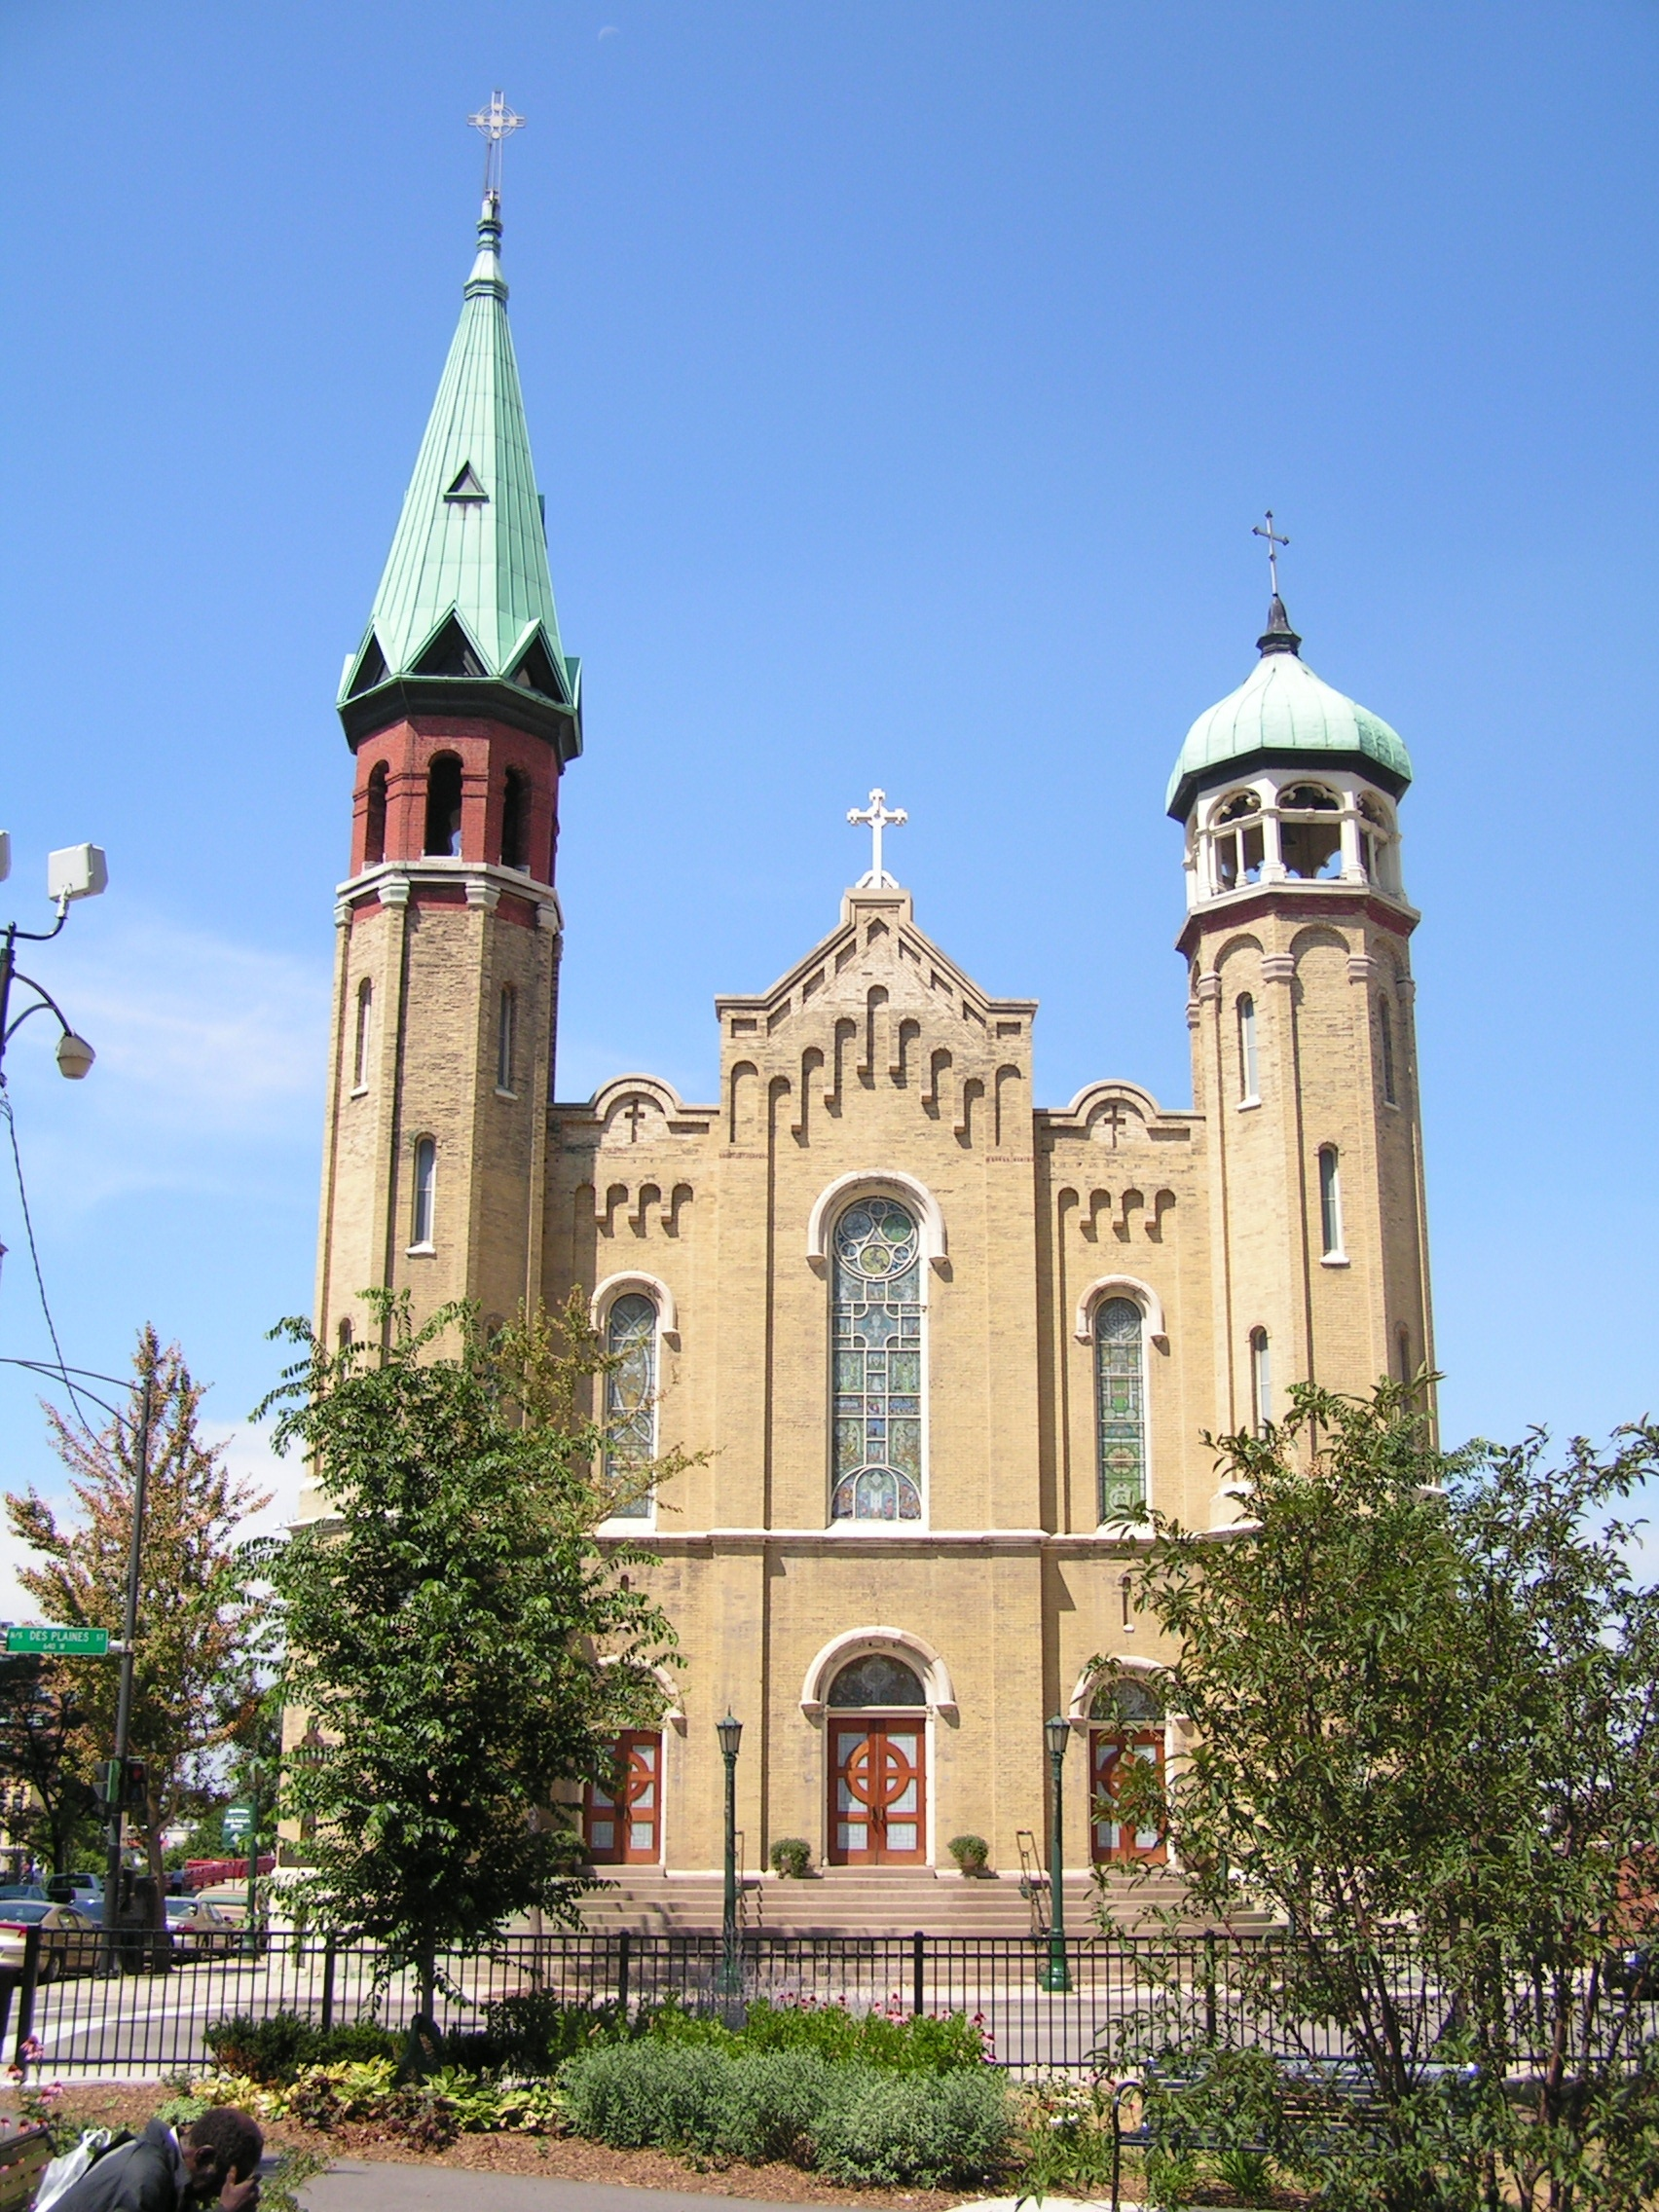 Old St. Pat's Church, an Illinois Historic Landmark, is the oldest operational public space to survive the Great Chicago Fire of 1871 .